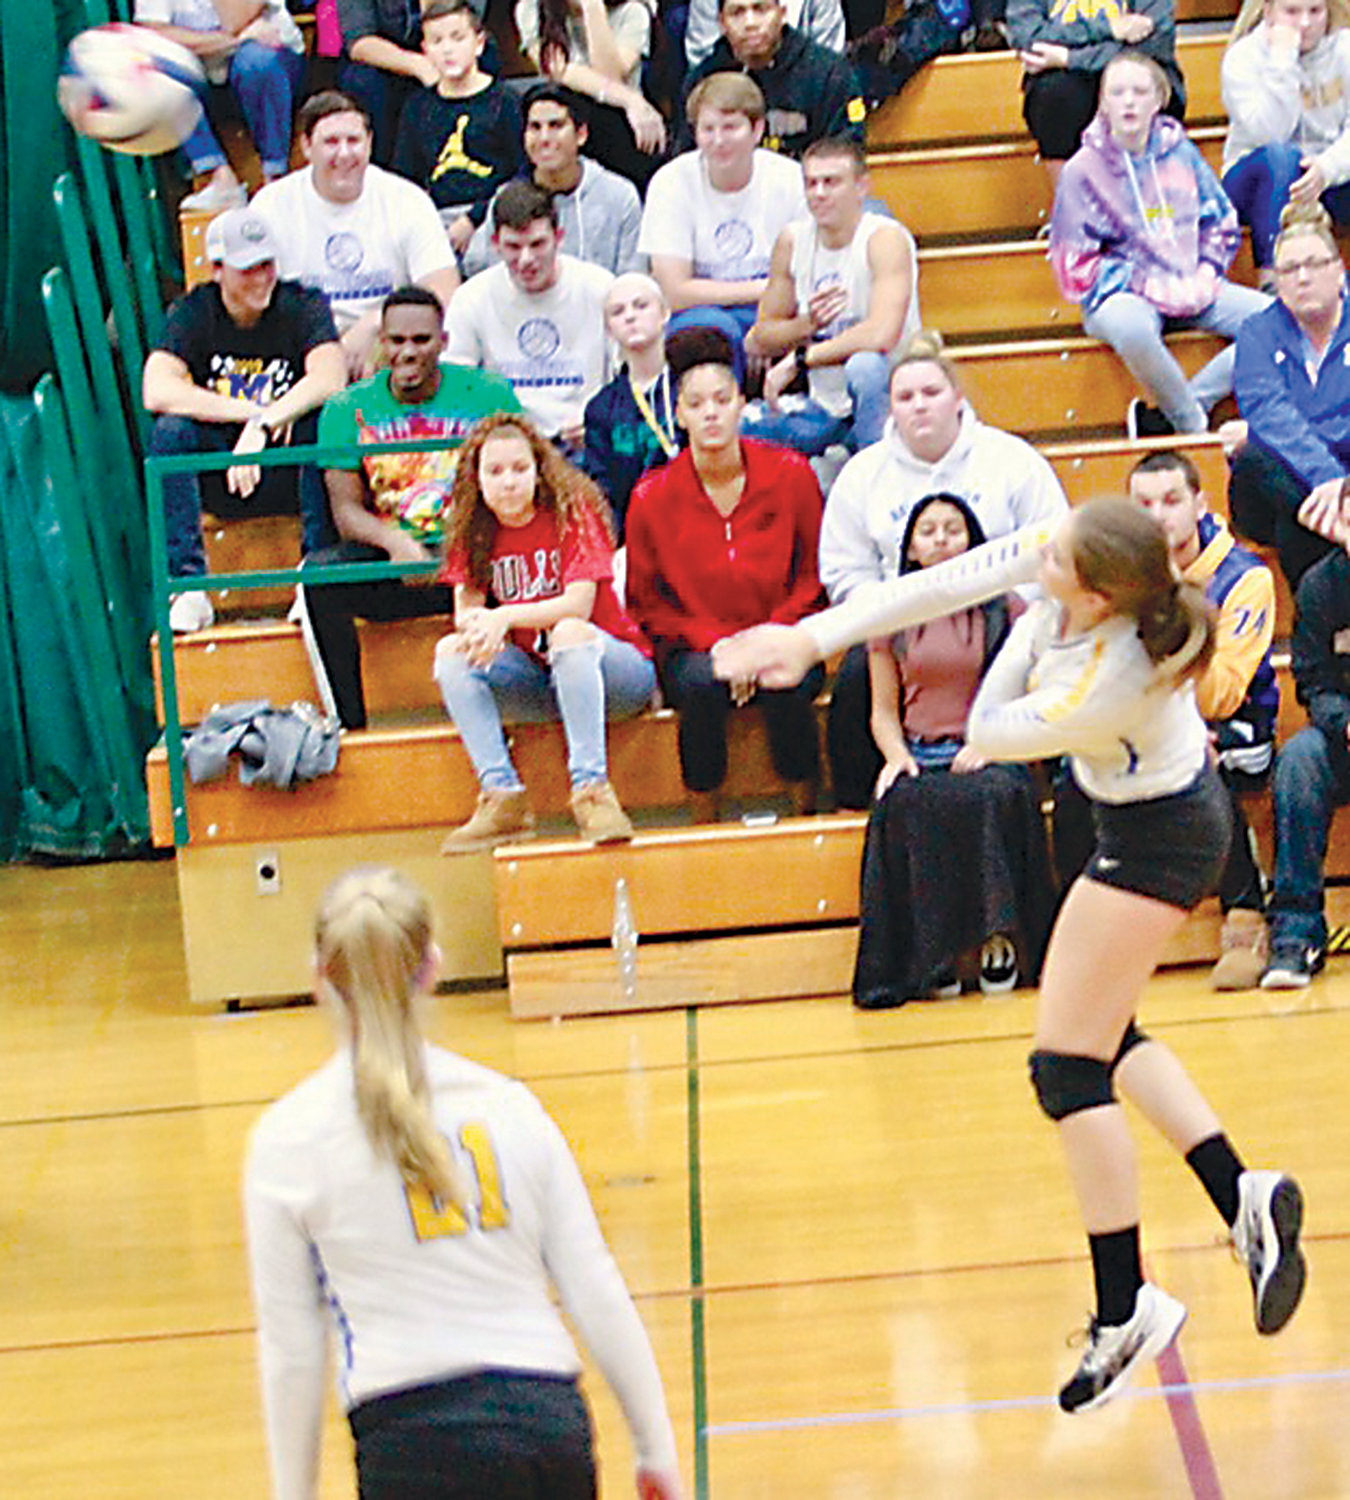 Courtney Shaffer drives the ball over the net during Middletown's district matchup with York Catholic on Oct. 30.